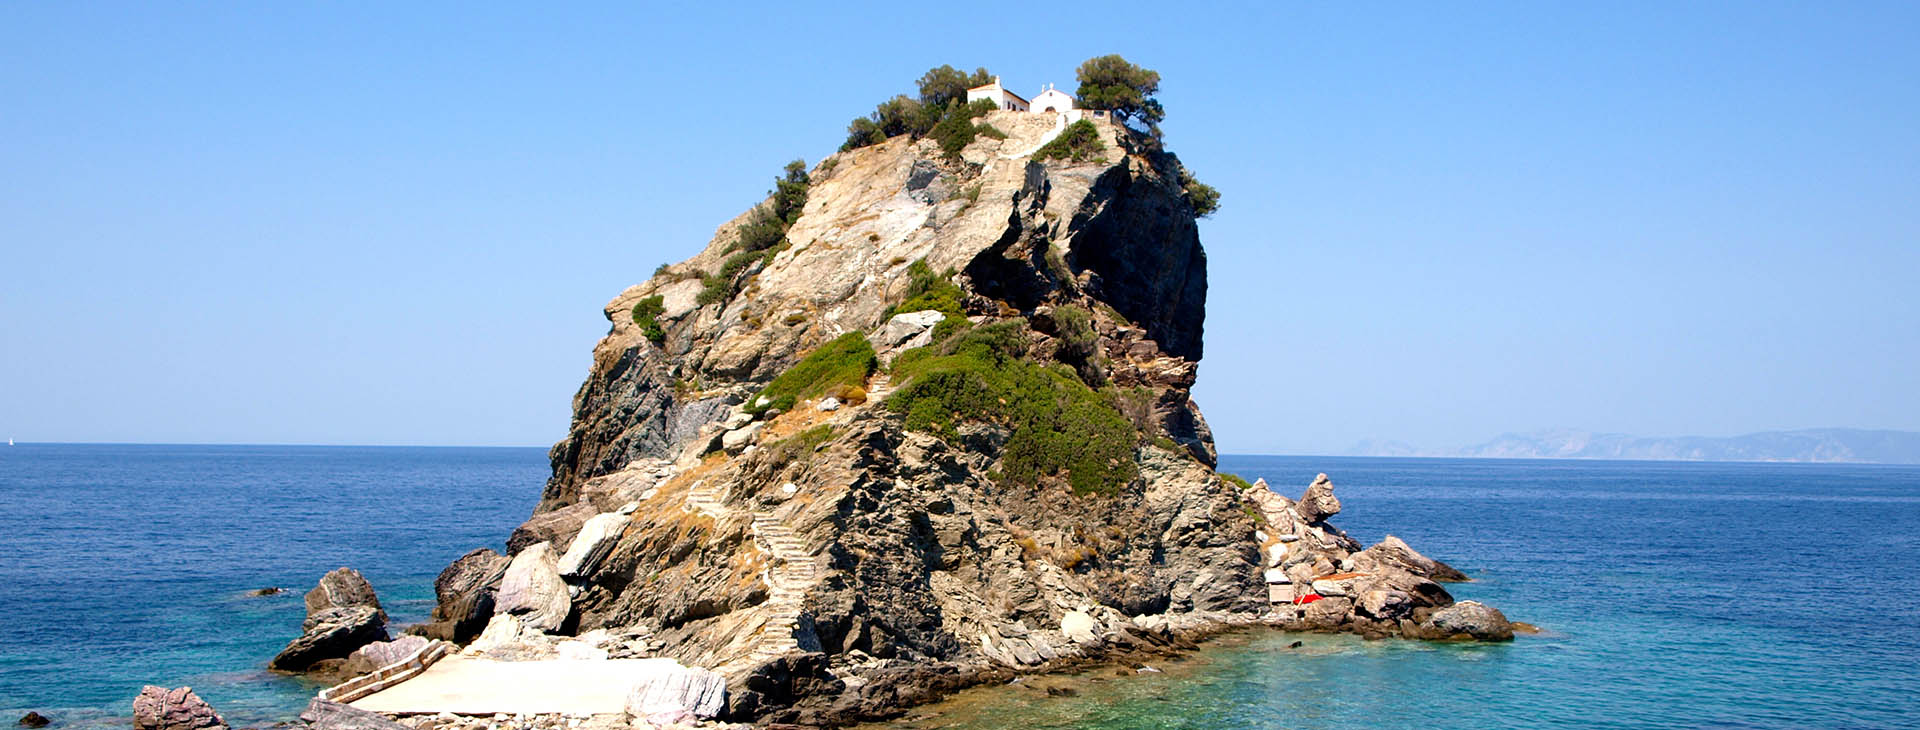 Agios Ioannis Chapel (Mamma Mia movie location), Skopelos